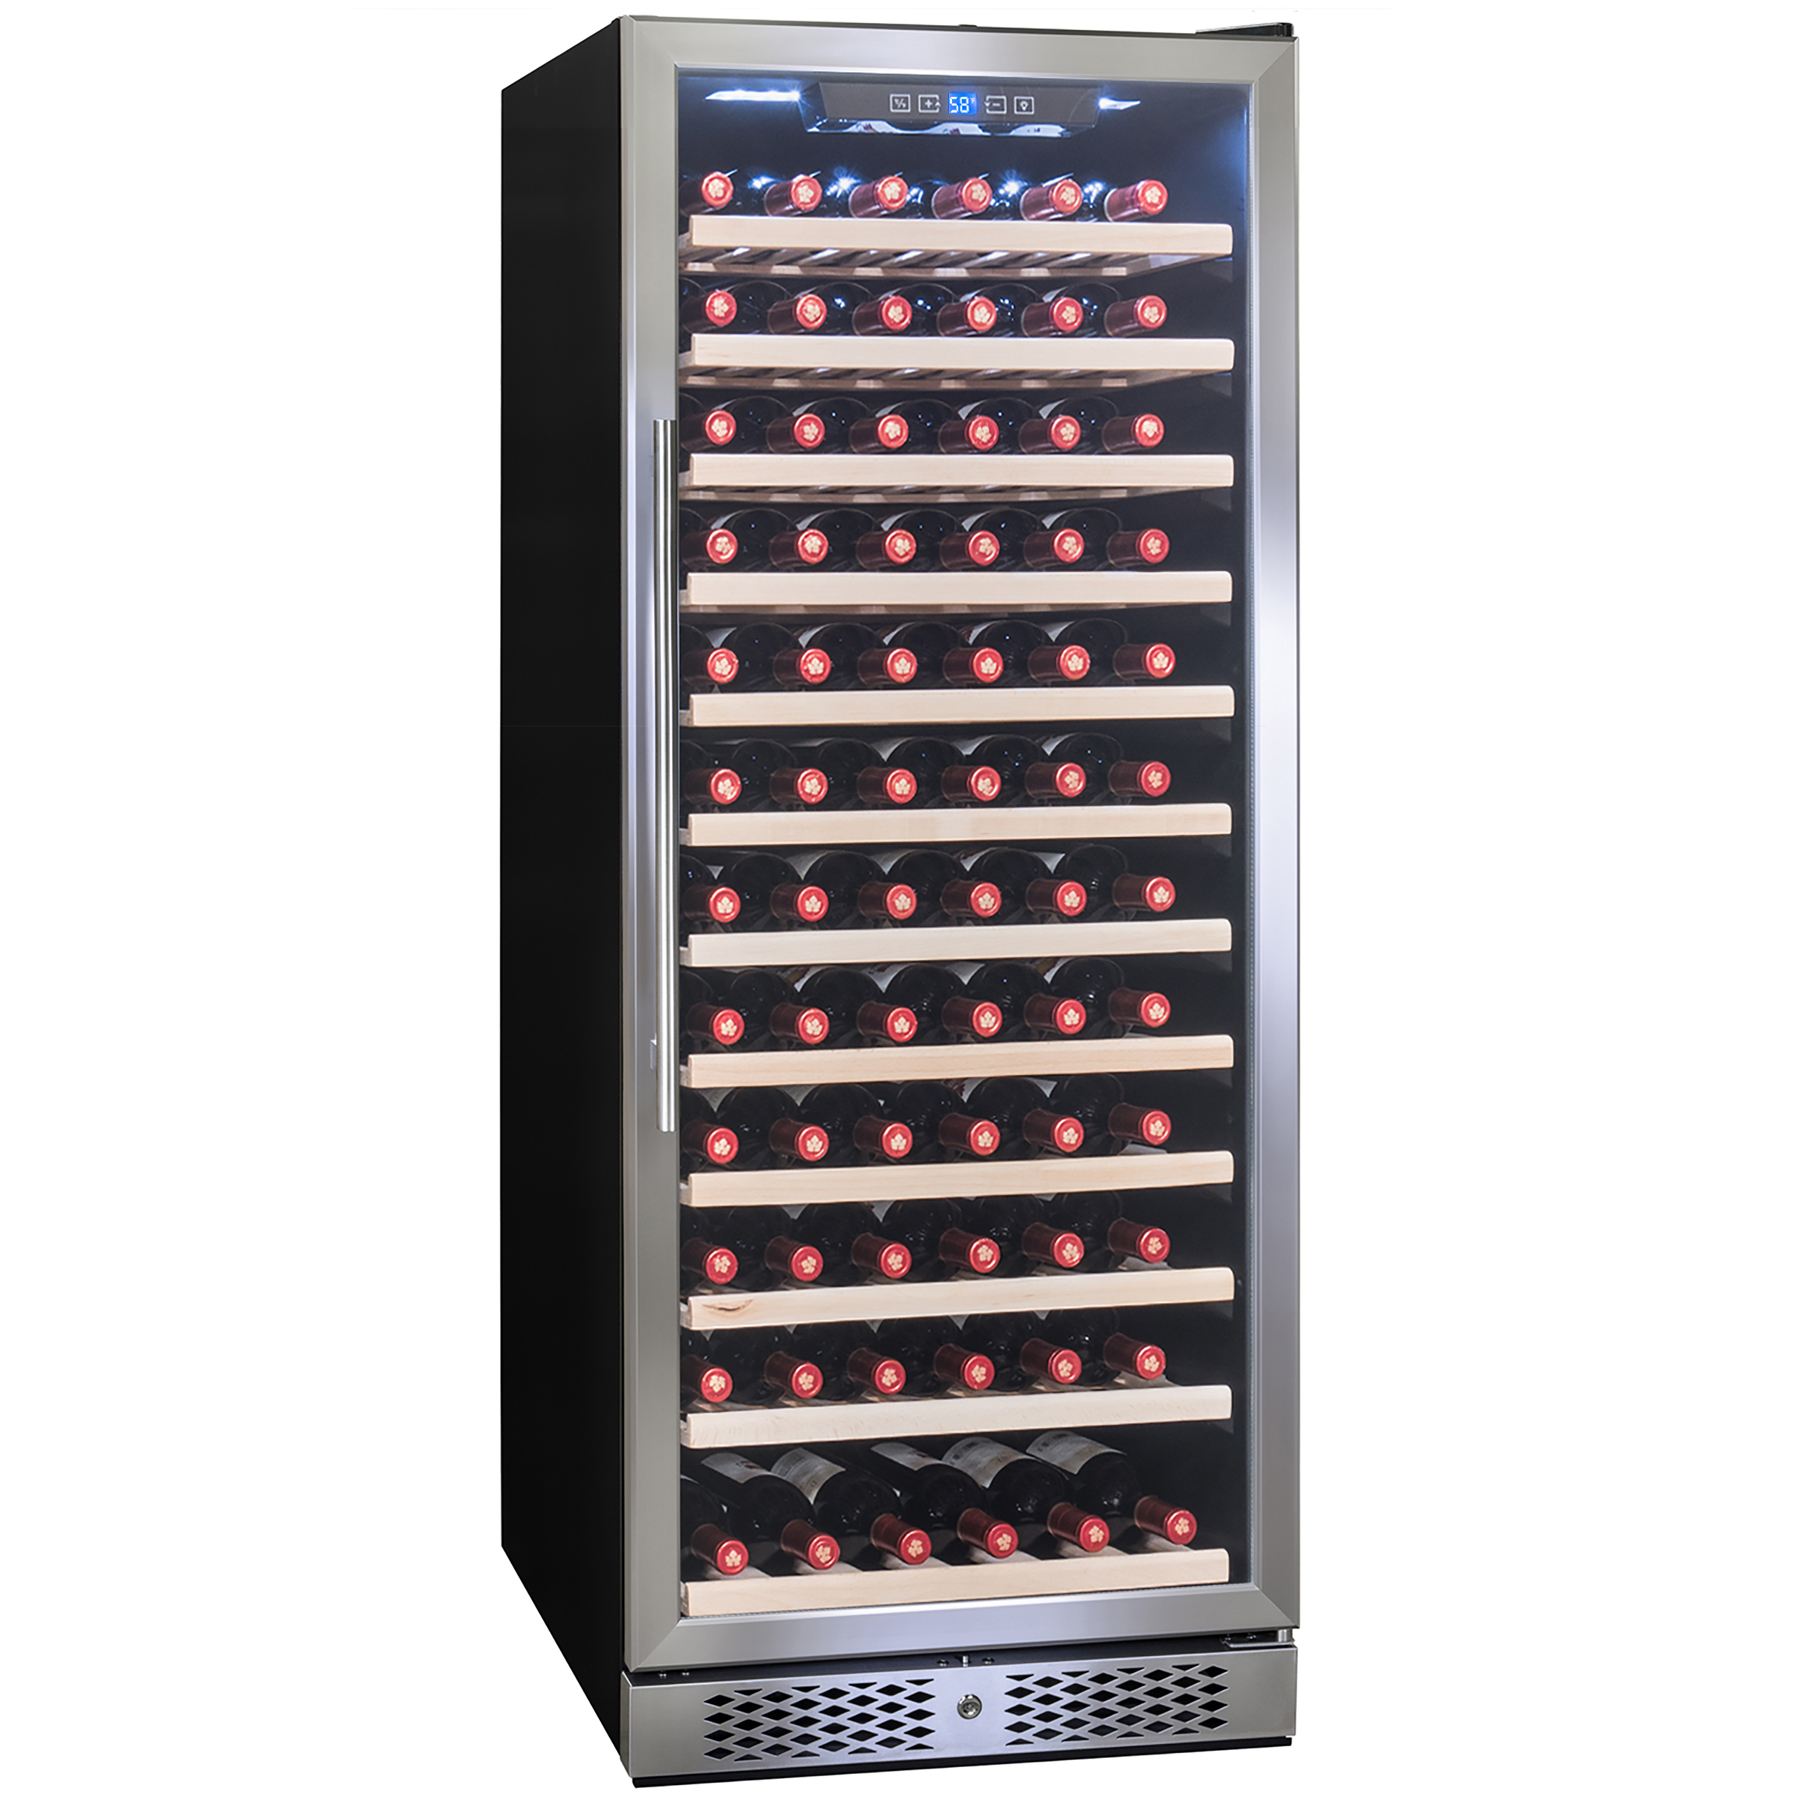 Image of AKDY 127 Bottle Single Zone Touch Control Compressor Freestanding Wine Cooler Chiller